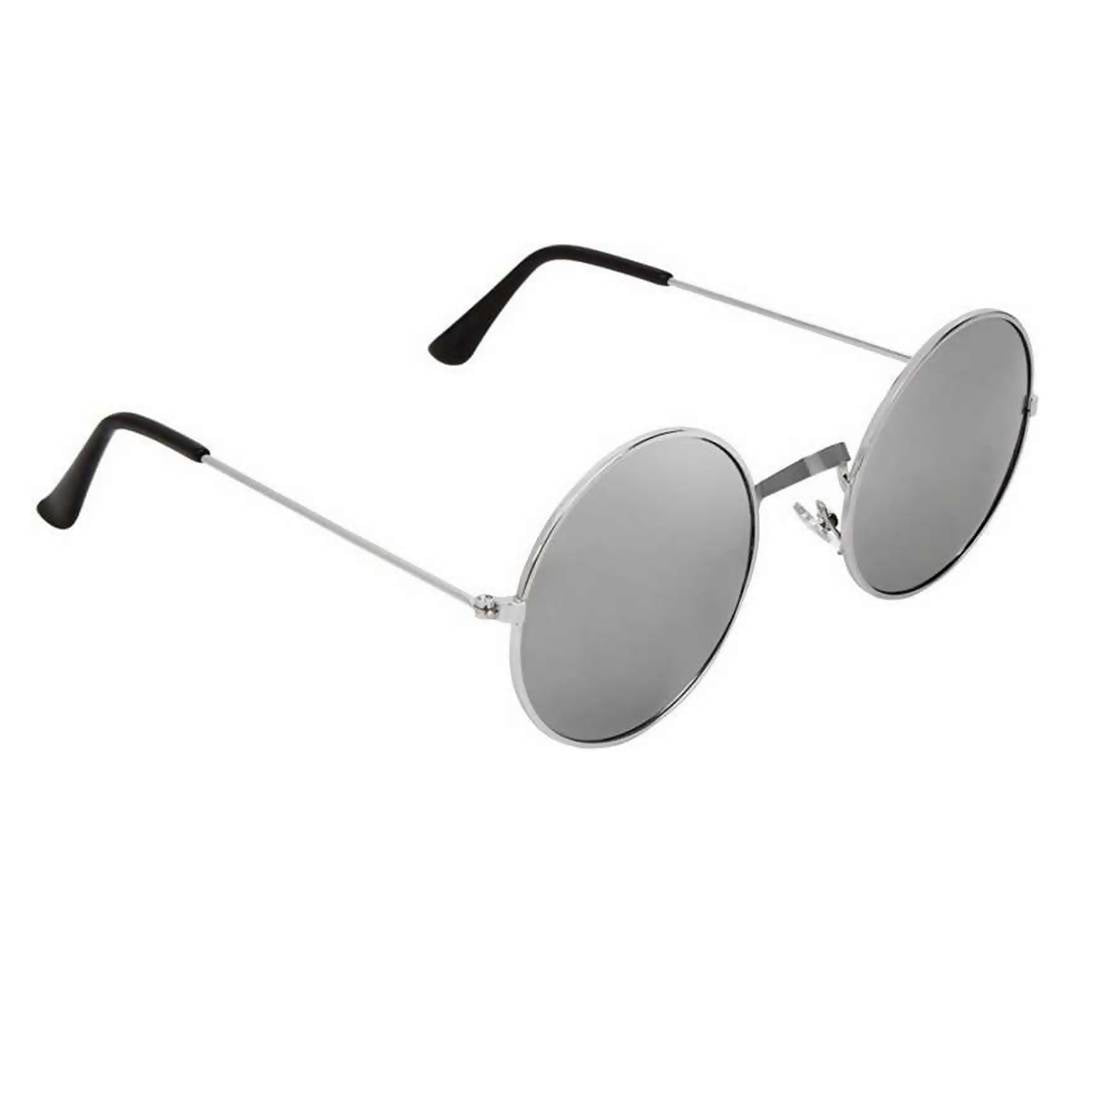 b2af94425 Benour Men's Silver Round Sunglasses $ BENAV060 – Fashion And You